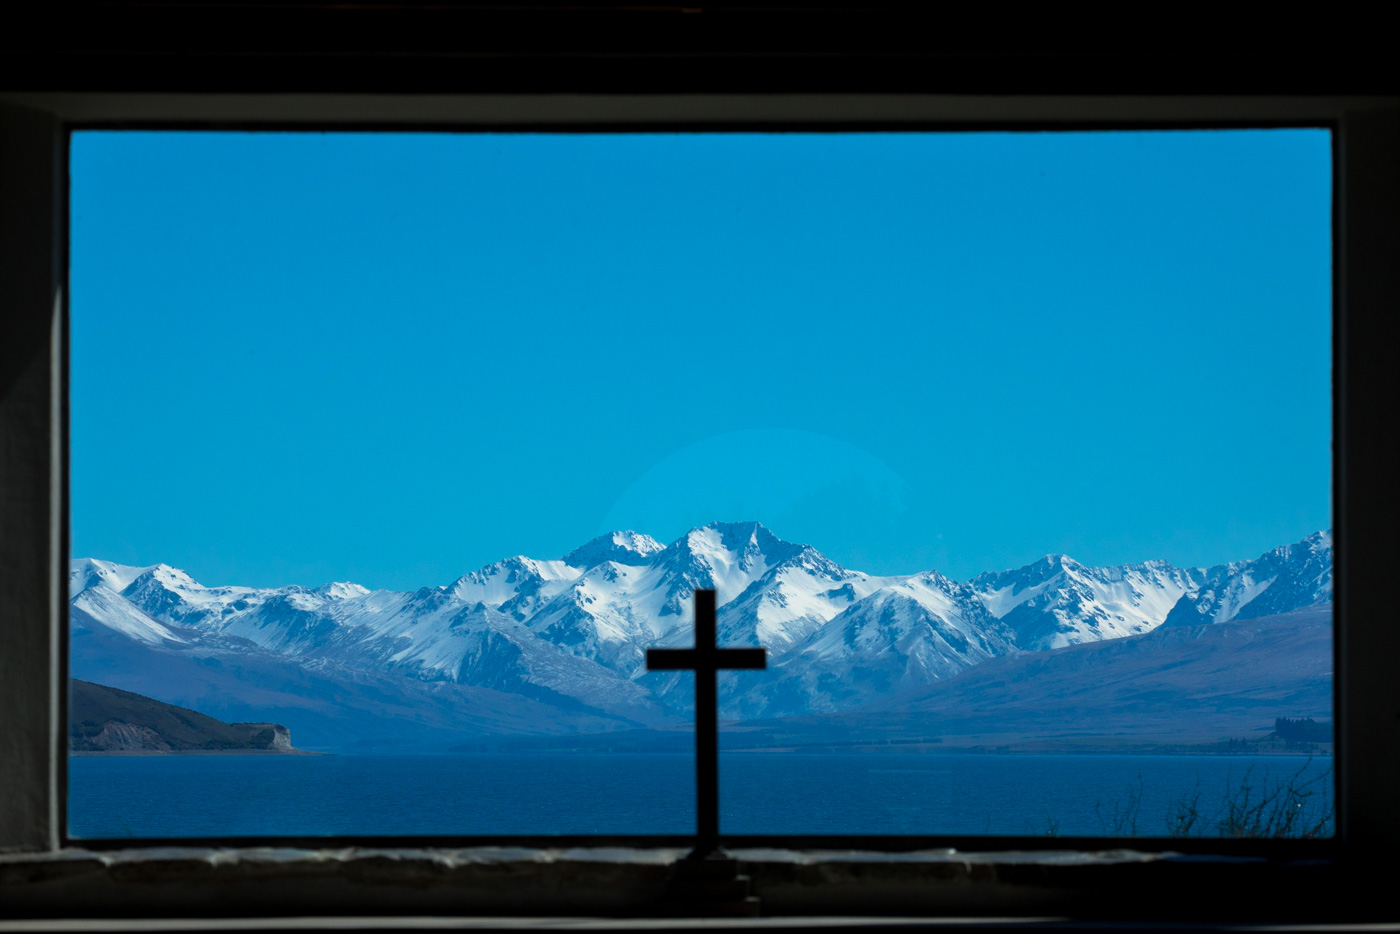 Natural framing, silhouettes, snow-topped mountains, these are a few of my favorite things